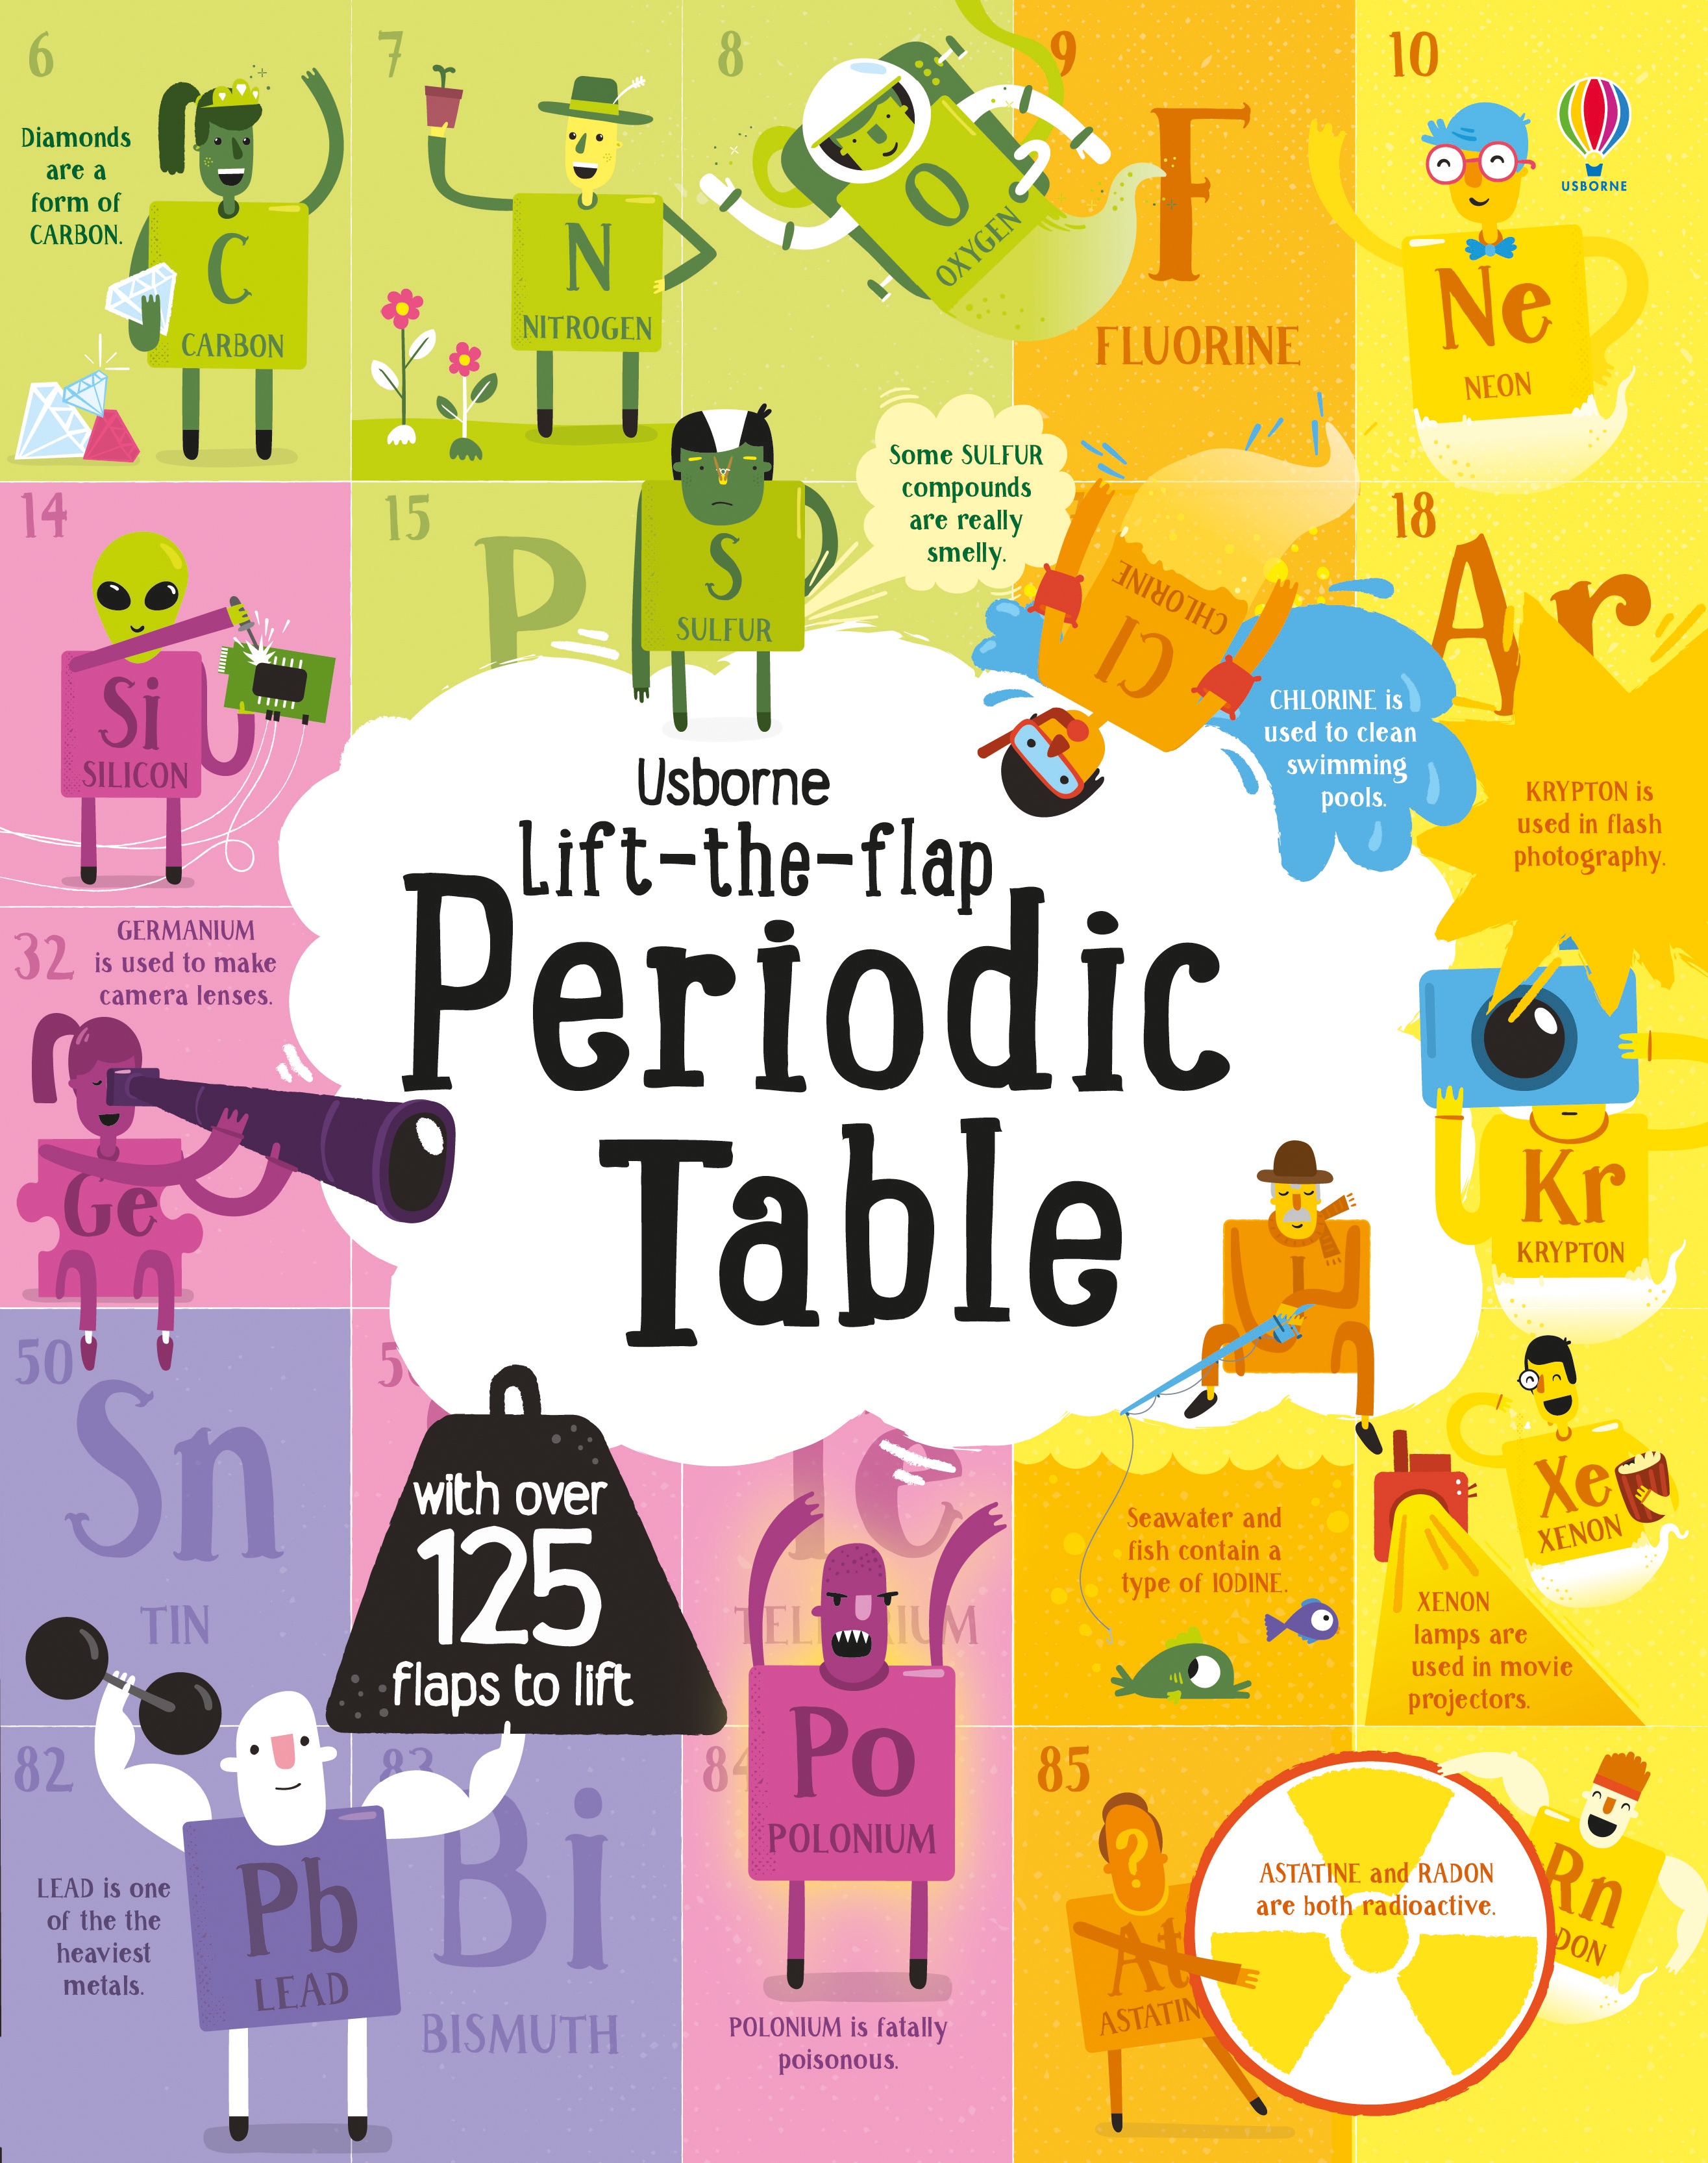 Radon on periodic table gallery periodic table images what family is radon in on the periodic table brokeasshome radon on periodic table choice image gamestrikefo Gallery